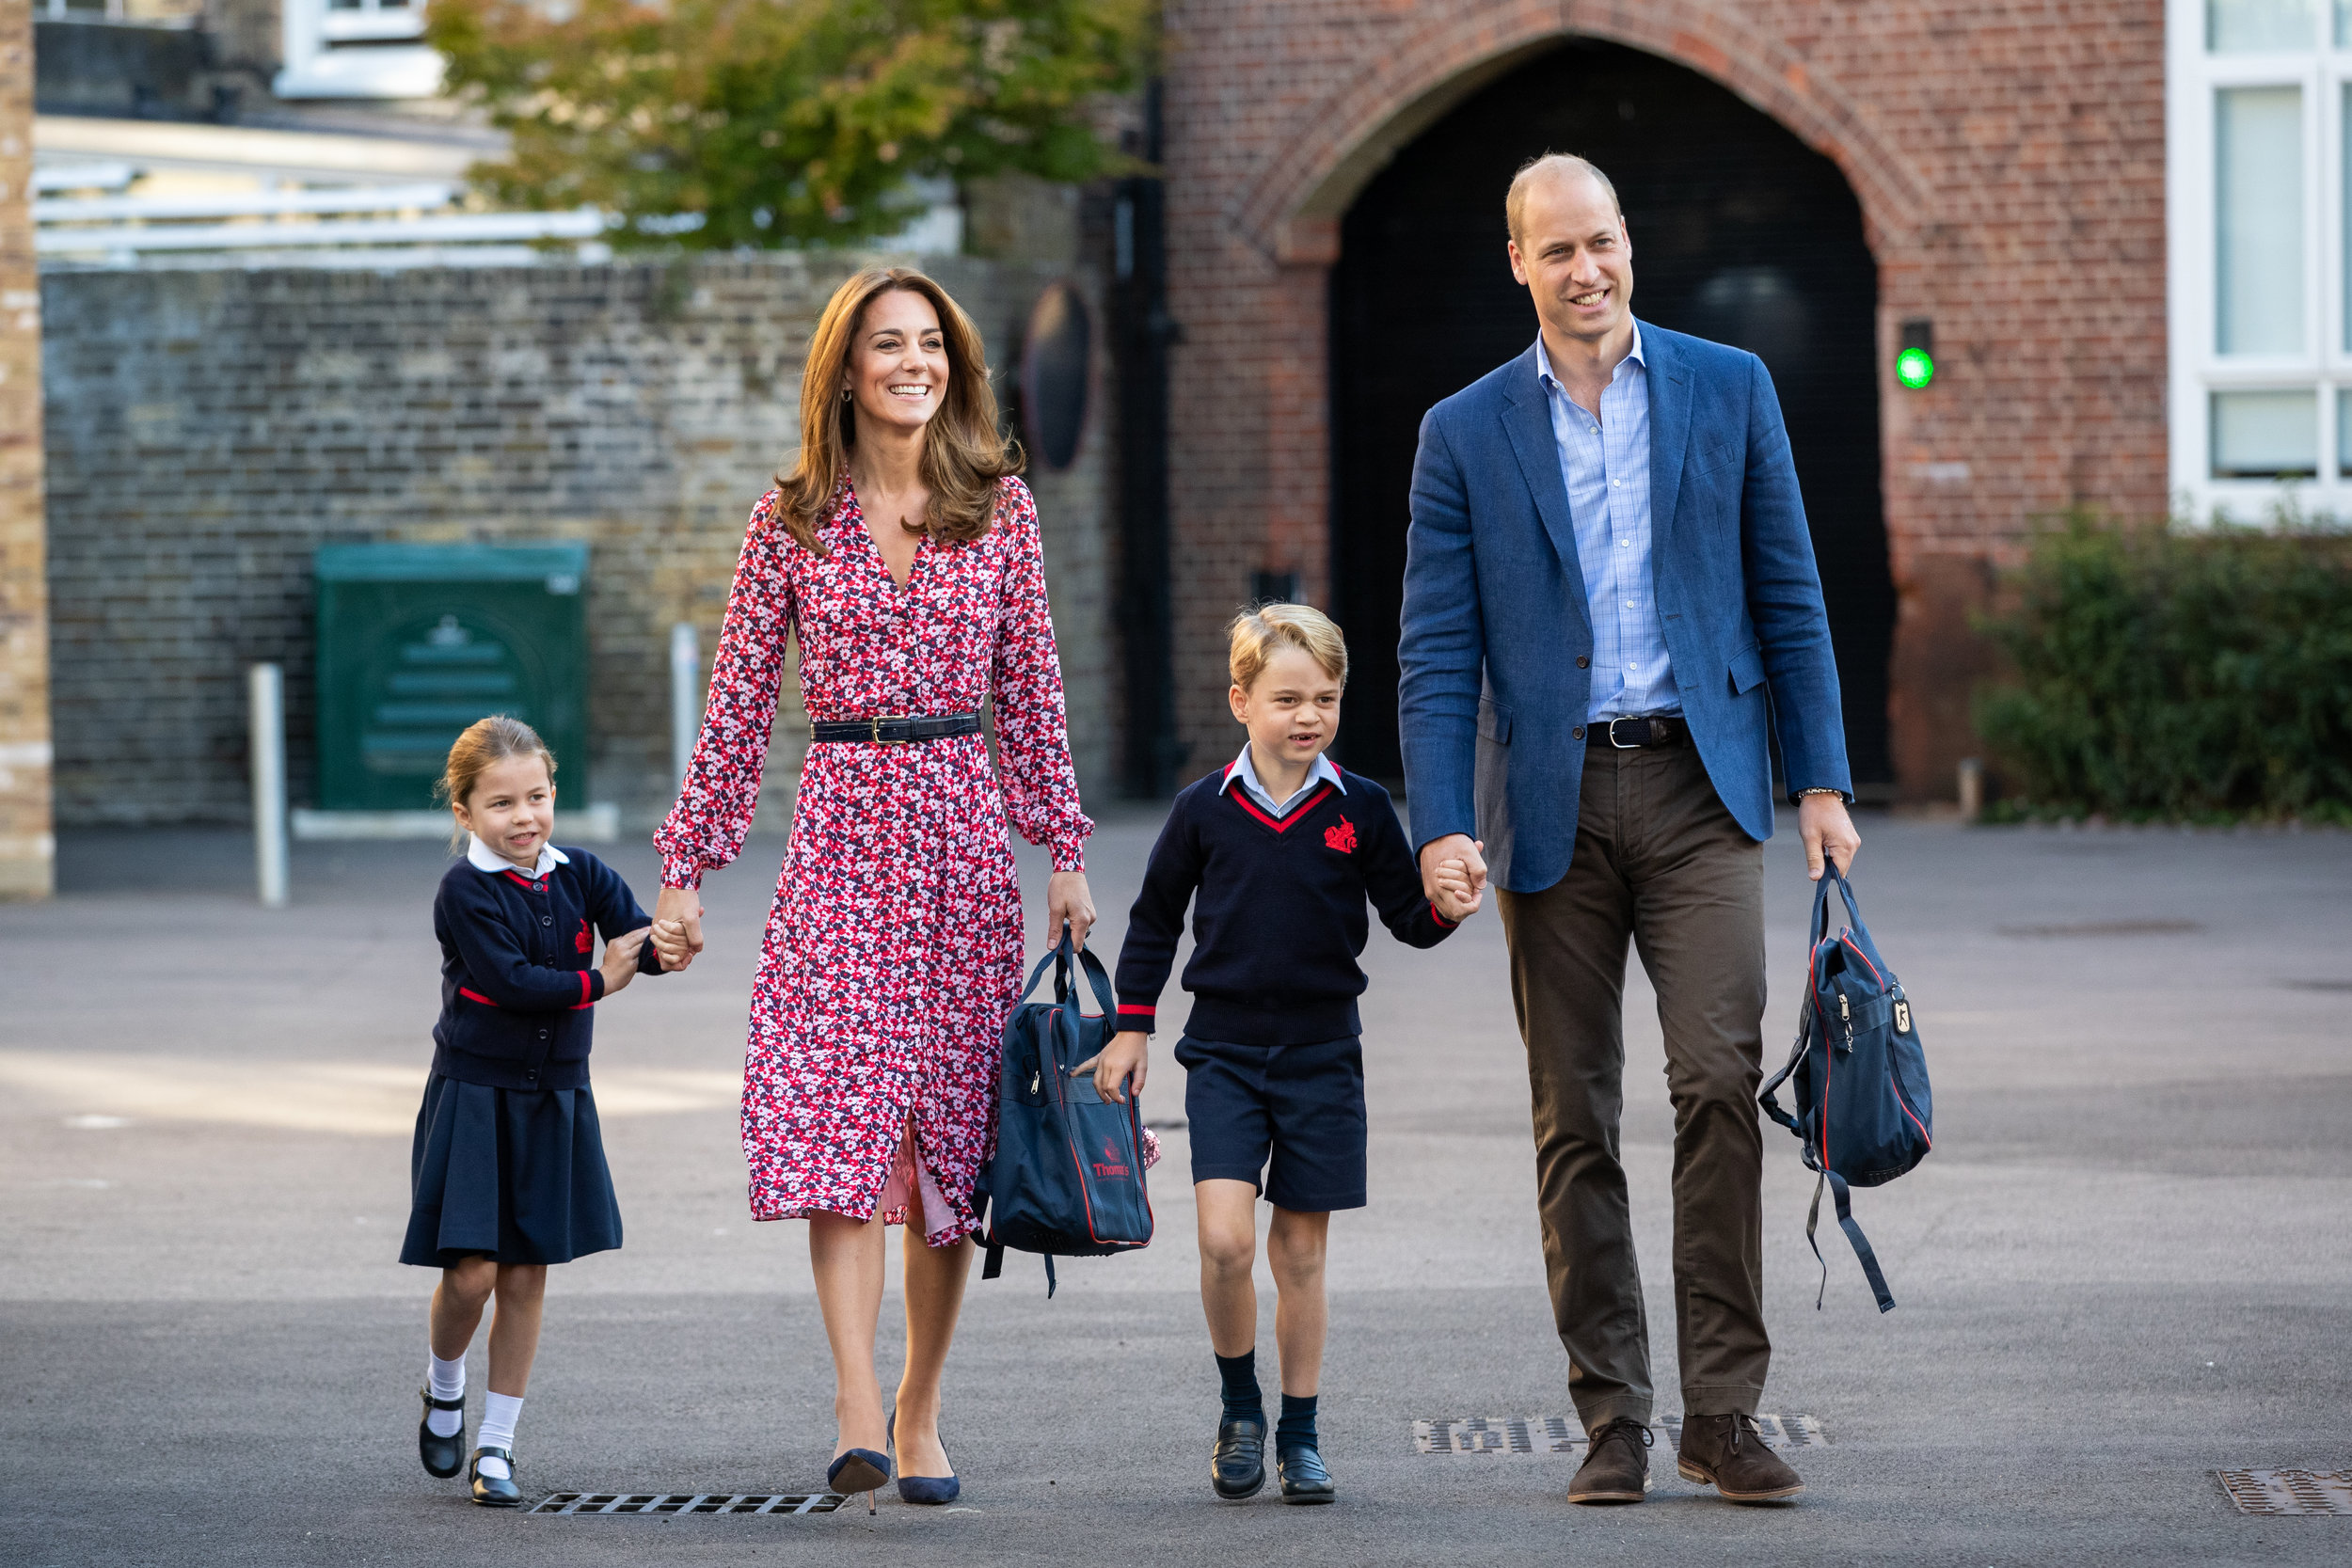 Britain's Princess Charlotte arrives for her first day at school accompanied by her mother Catherine, Duchess of Cambridge, father Prince William, Duke of Cambridge, and brother Prince George, at Thomas's Battersea in London.